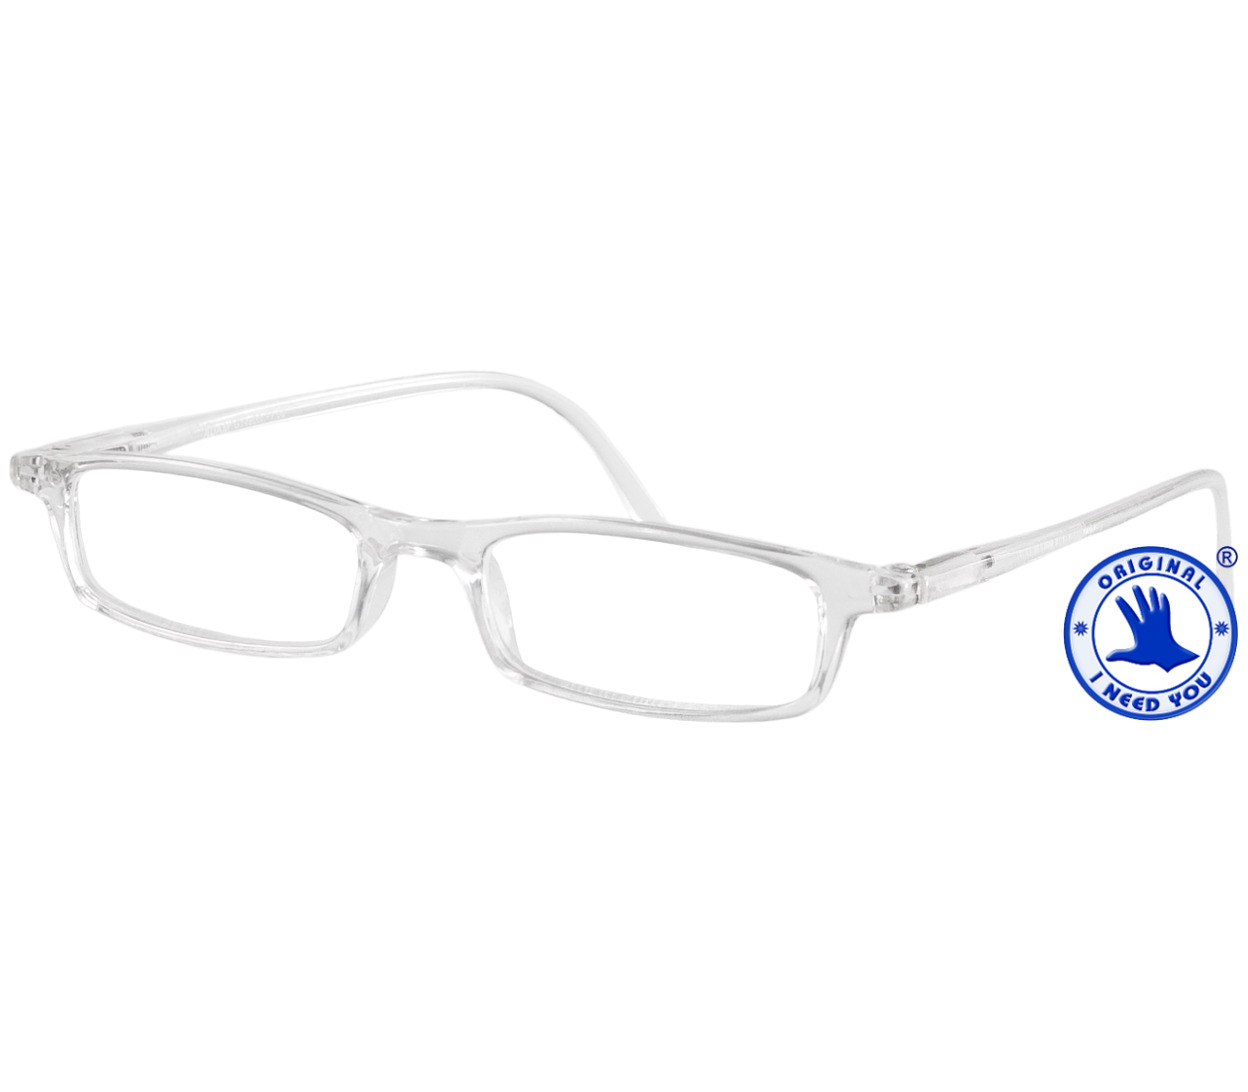 Main Image (Angle) - Adam (Clear) Classic Reading Glasses